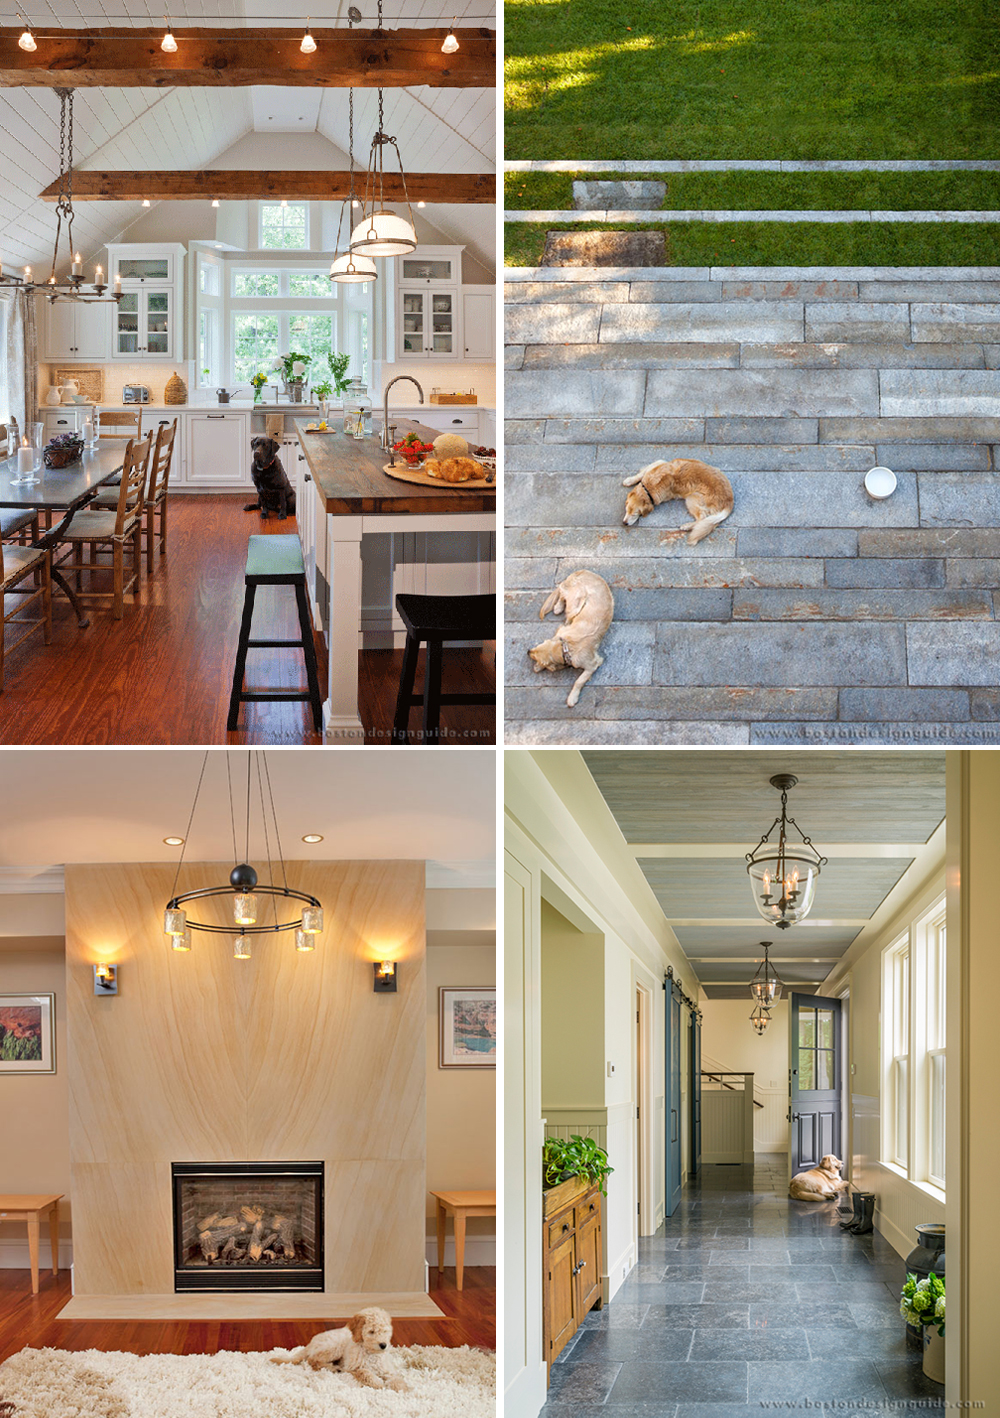 home design, puppies, dogs, national puppy day, architecture, builder New England